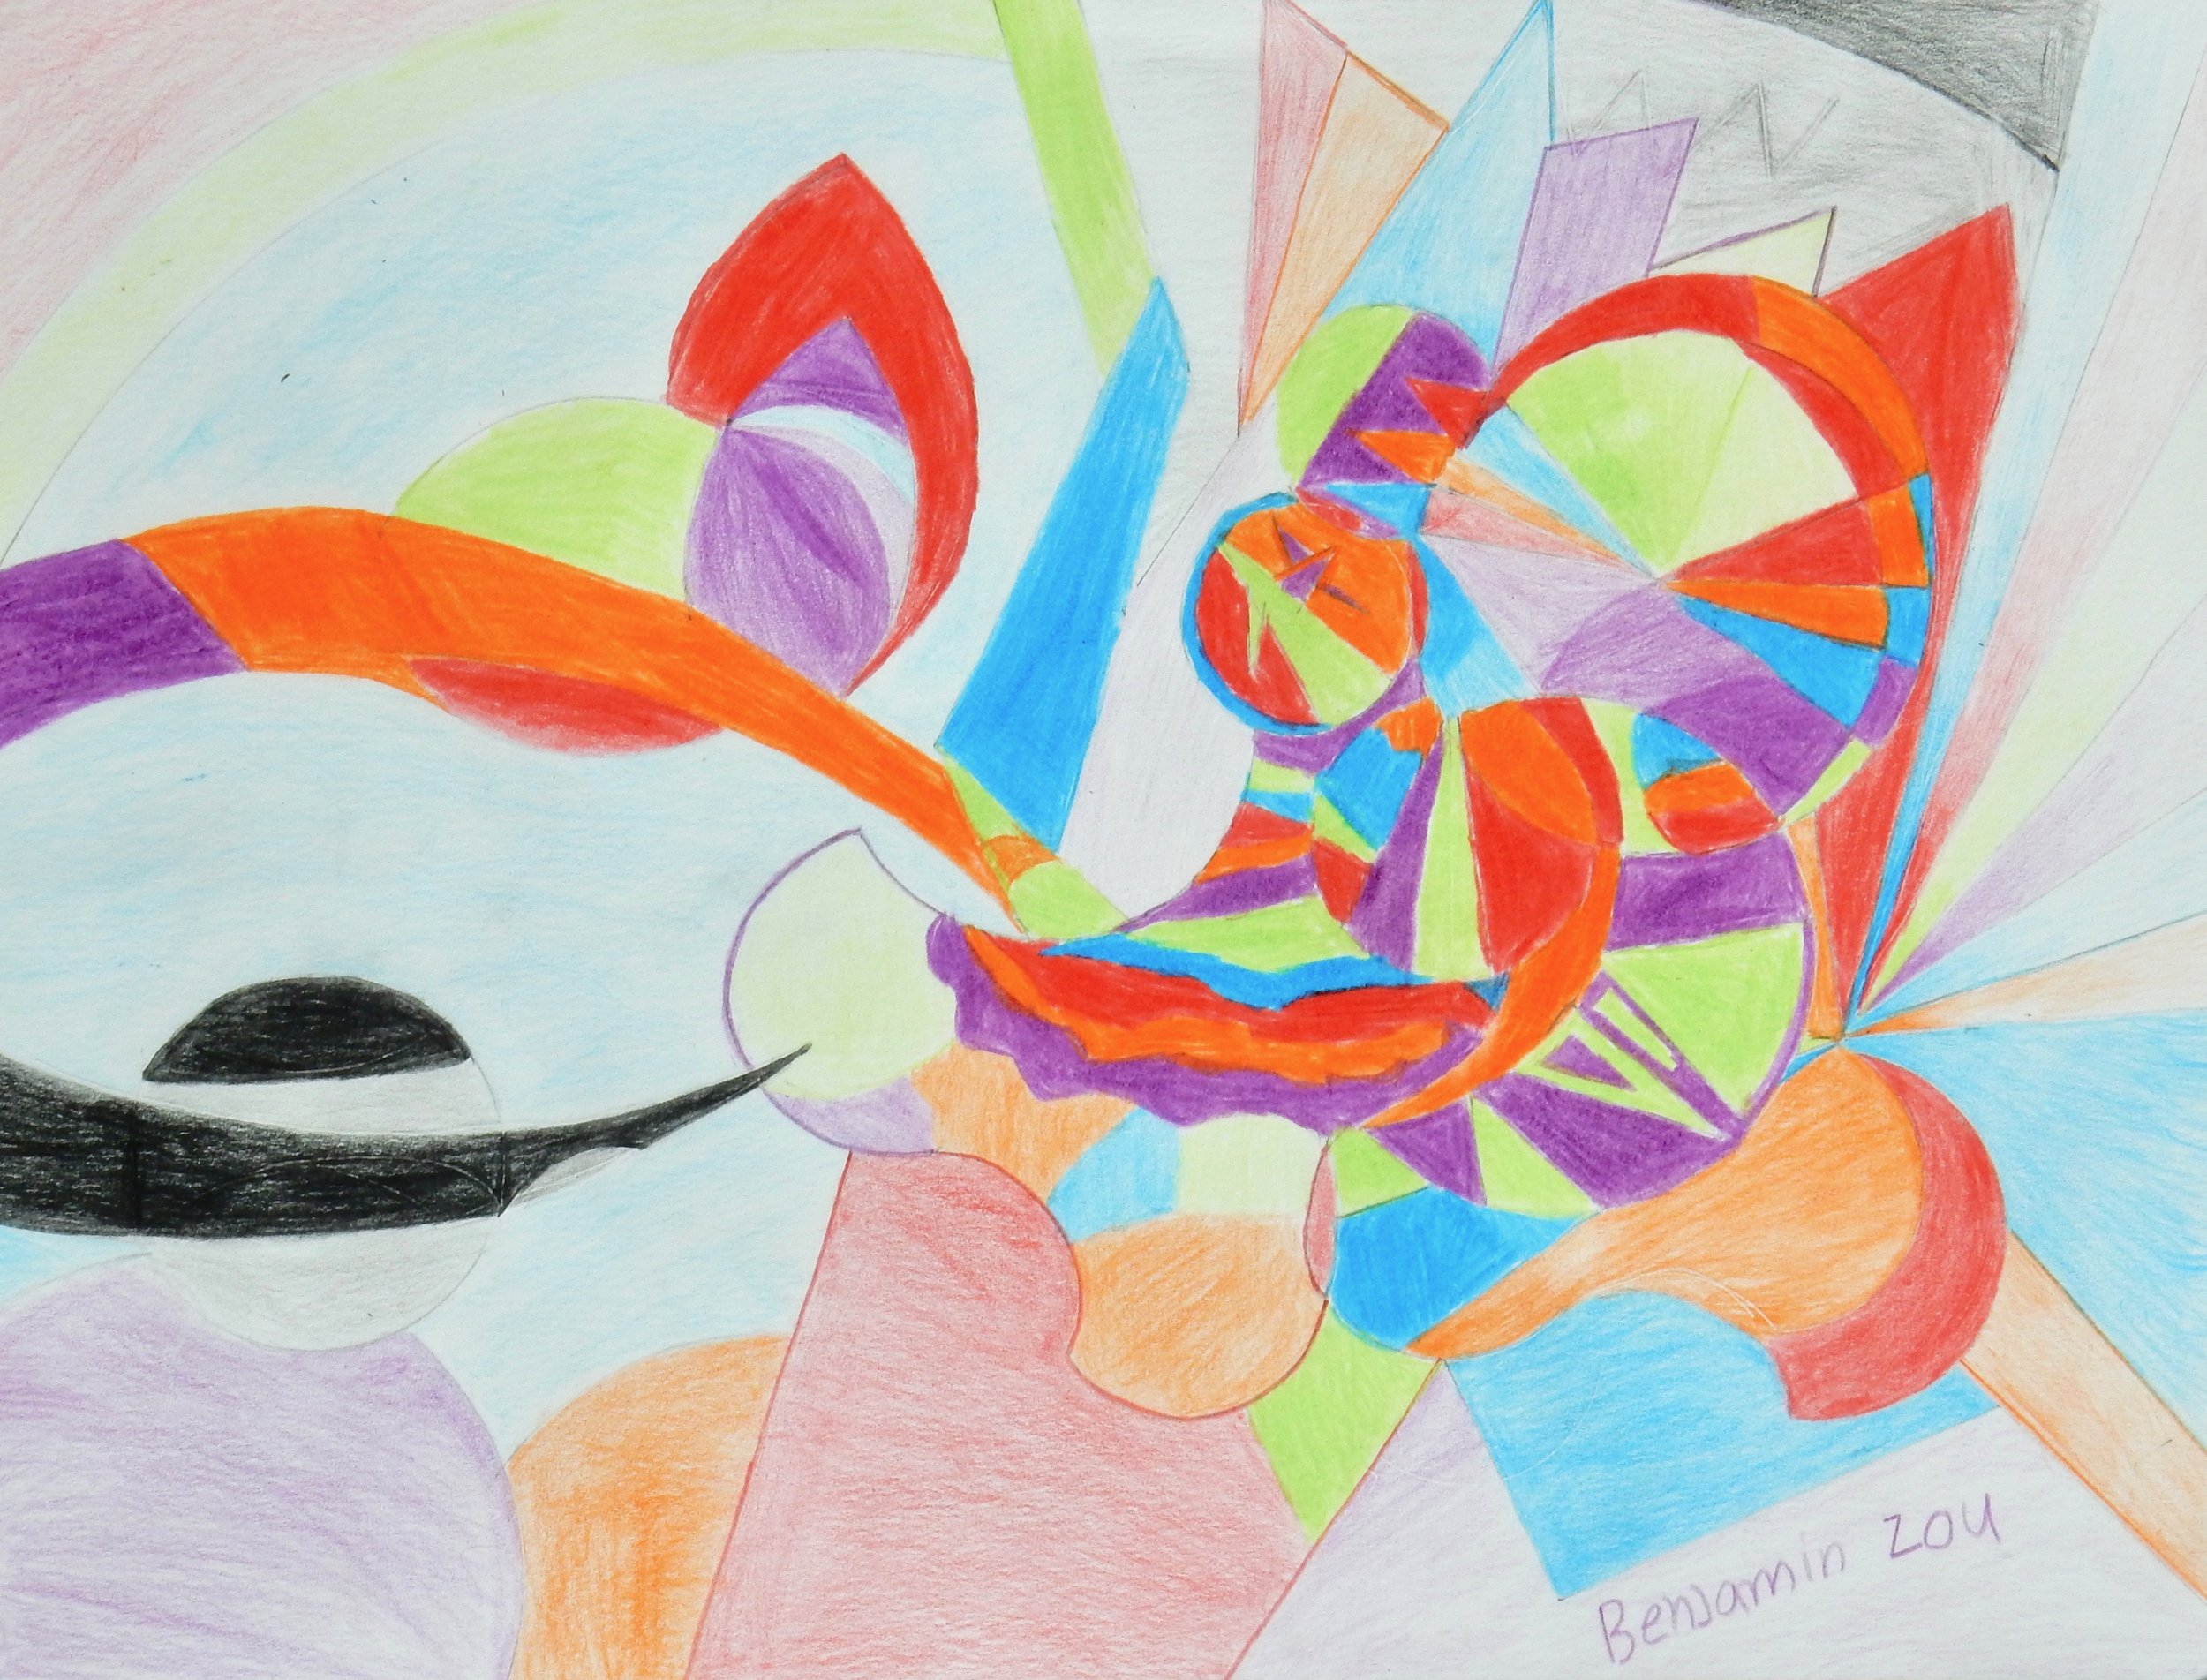 Benjamin Zou.10 yrs.markers and colored pencil abstract